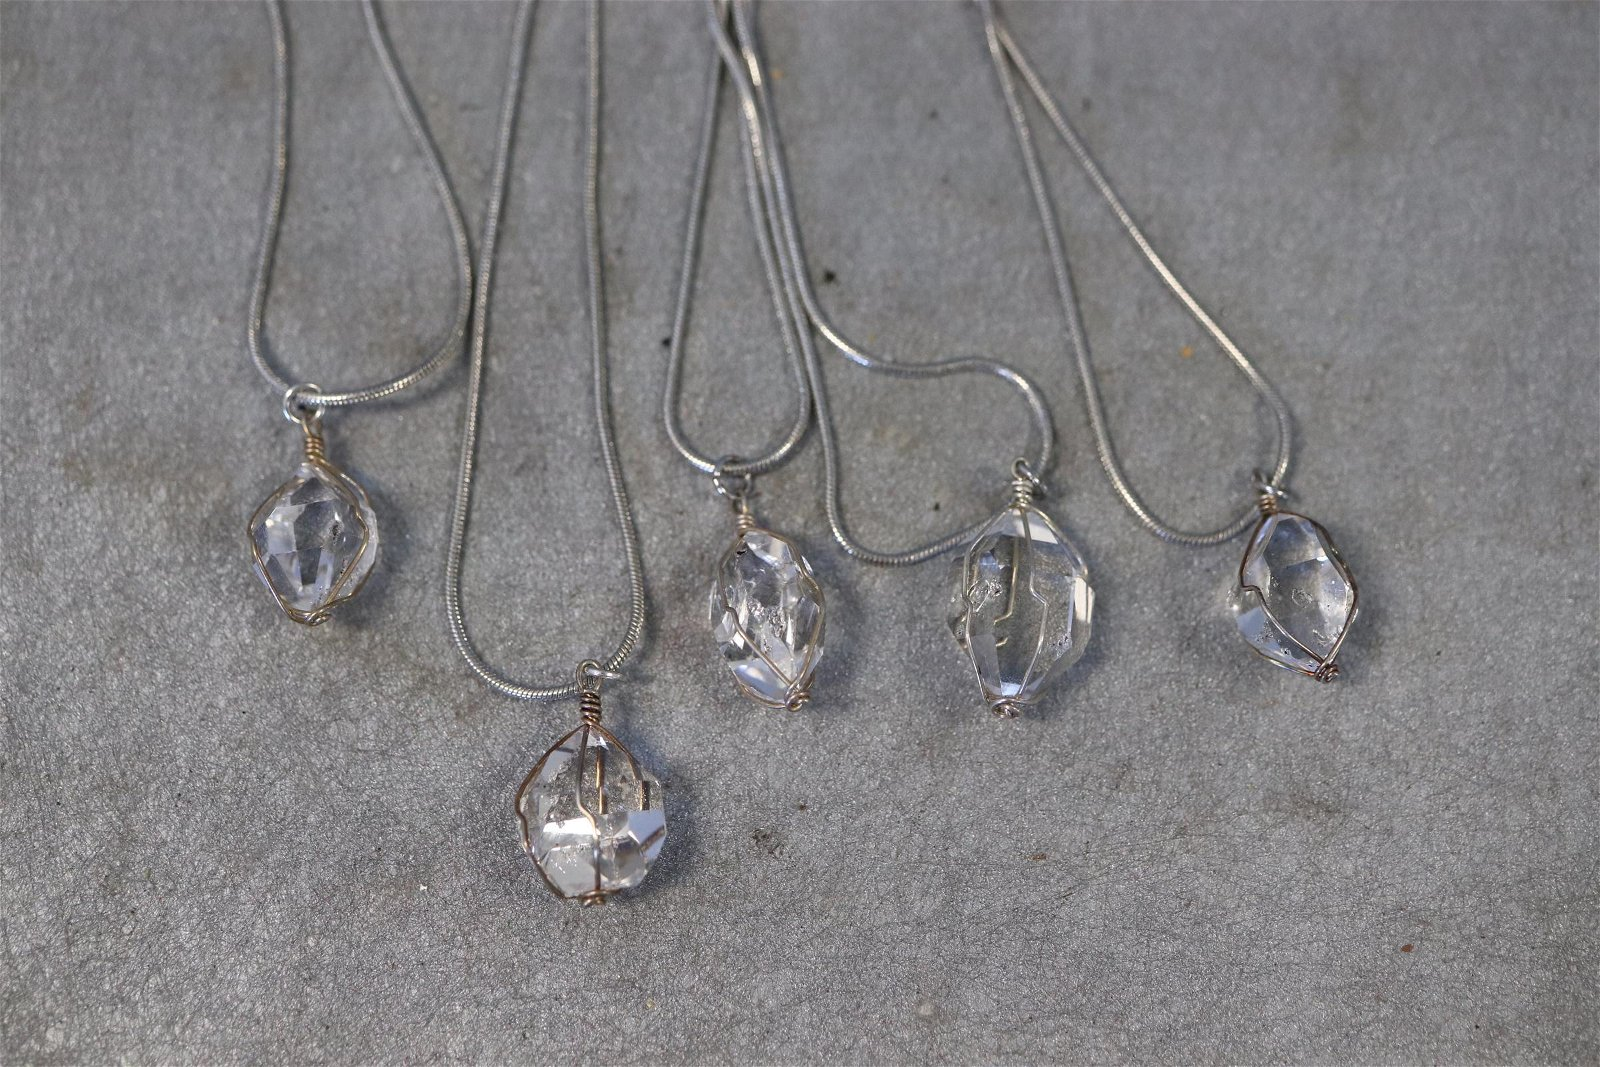 Lot of 5 Herkimer Diamond Silver tone Necklaces